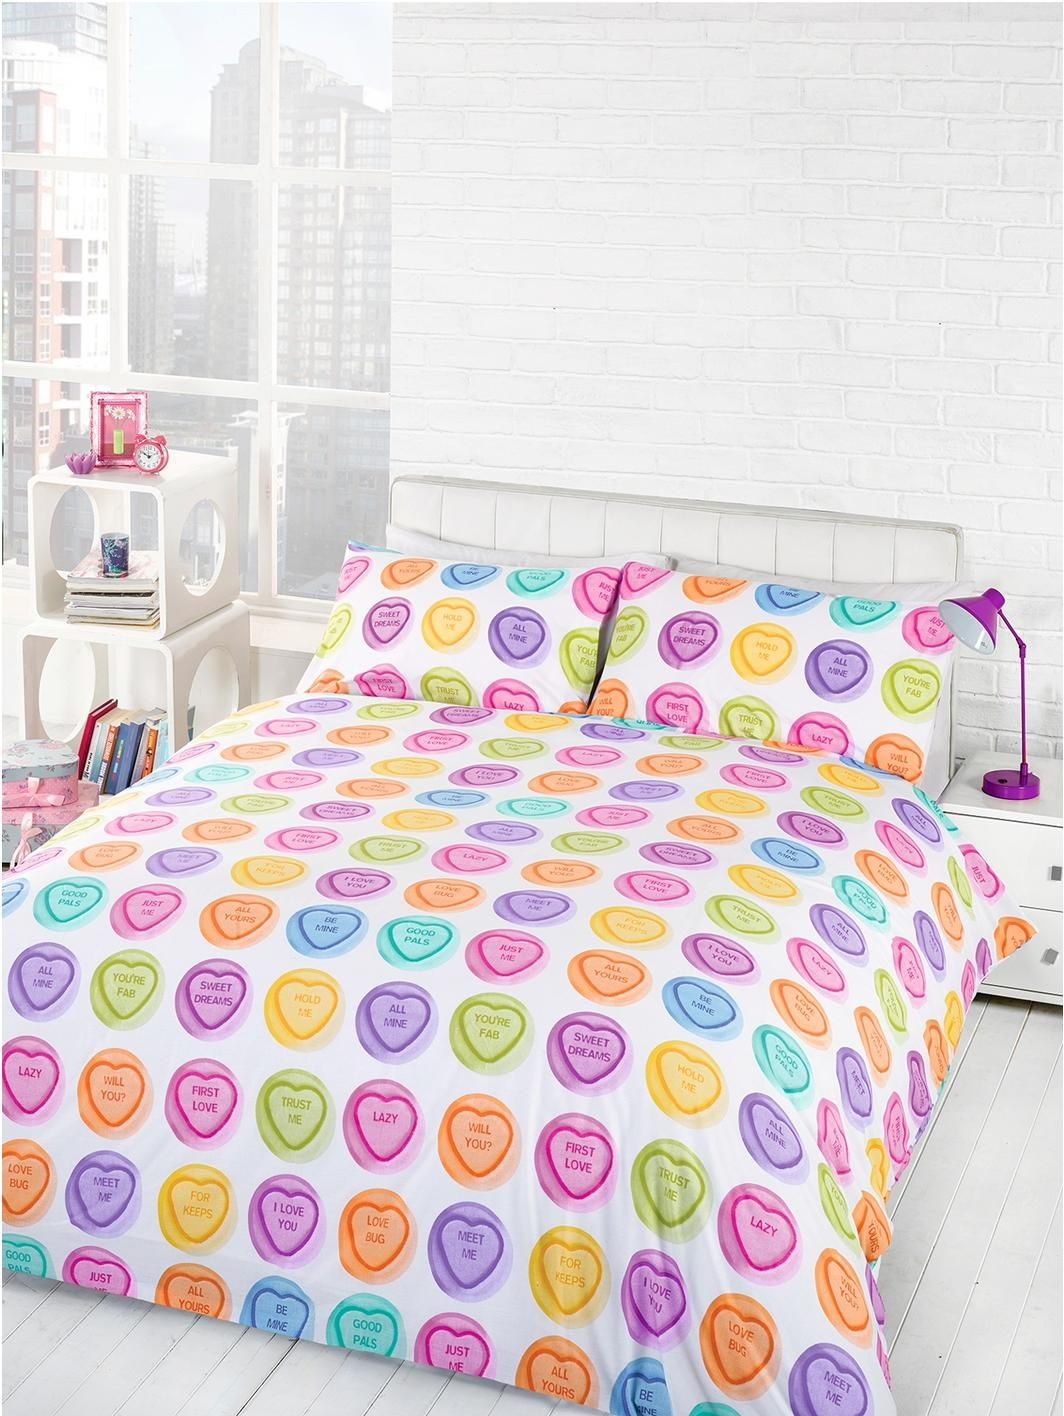 Love Hearts Hug Me Duvet Cover And Pillowcase Set In Single Double Sizes Sweet As Candy This Will Give Your Bedroom A Fun